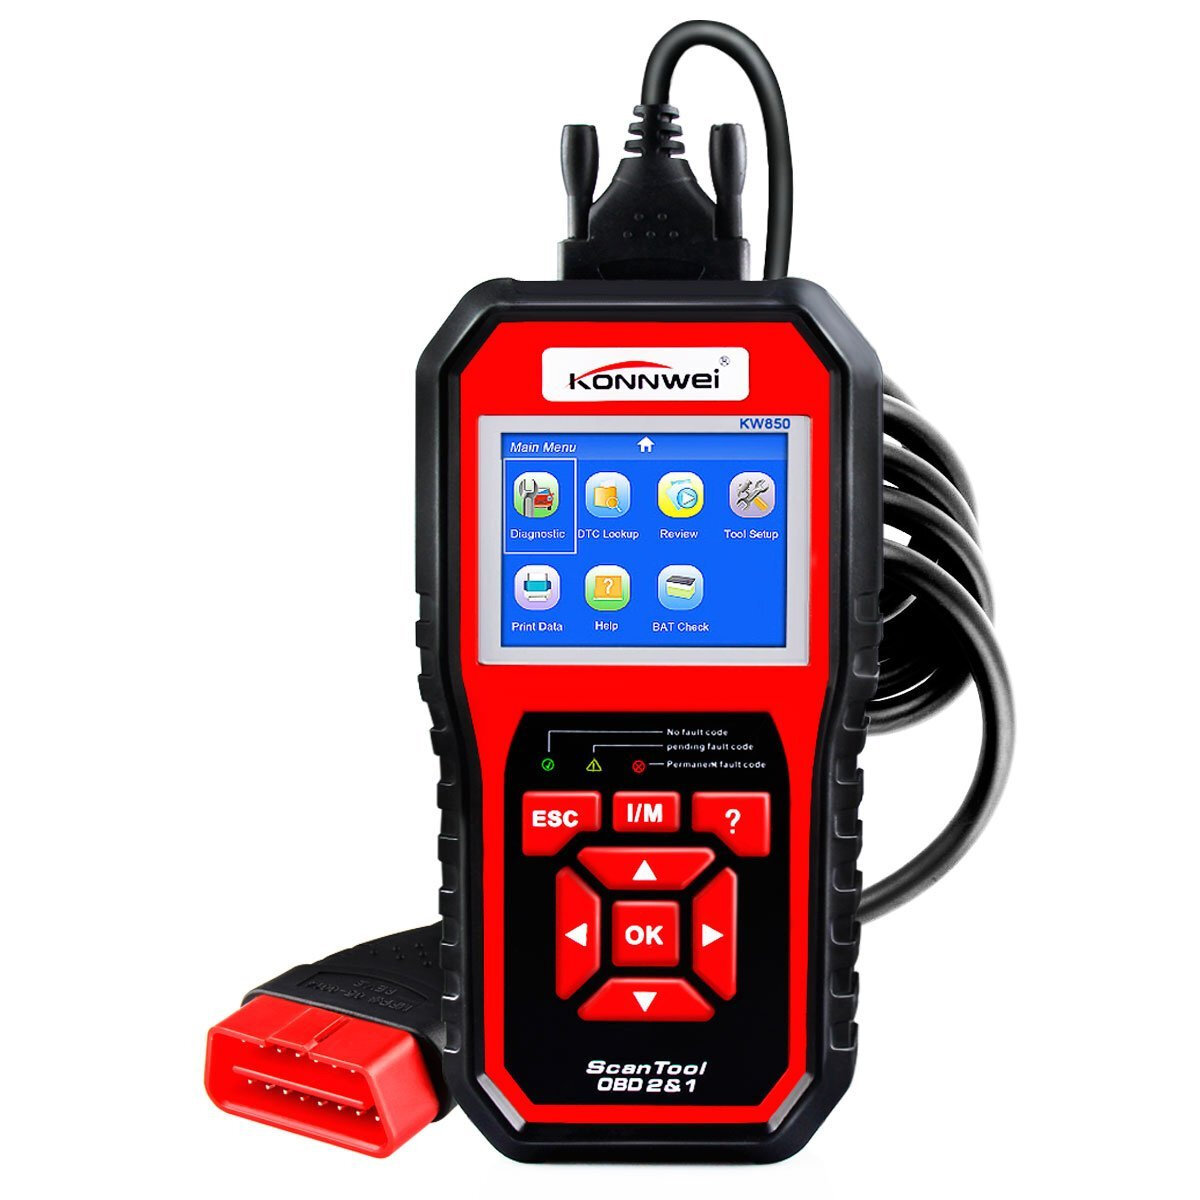 KONNWEI KW850 OBD2 Scanner EOBD Car Scan Diagnostic Tool Engine Fault Code Reader Multi-languages